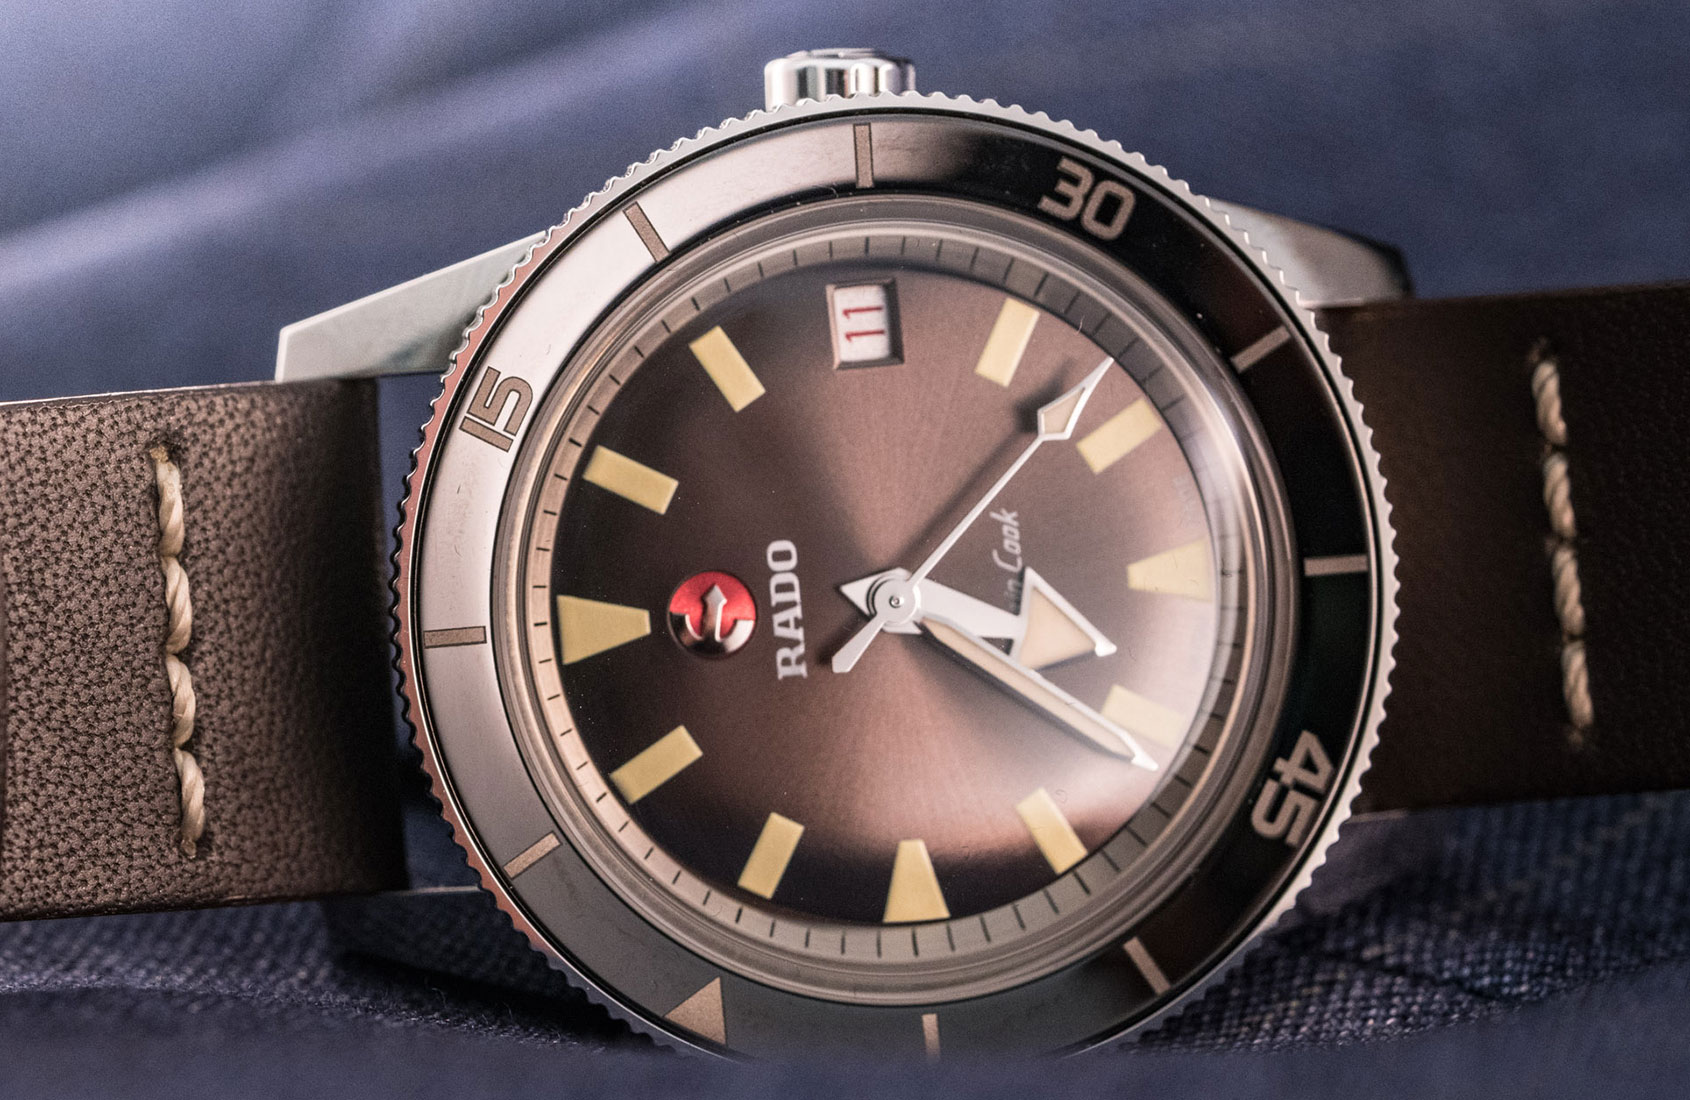 HANDS-ON: The Rado HyperChrome Captain Cook, a cheeky '60s reissue that swings both ways